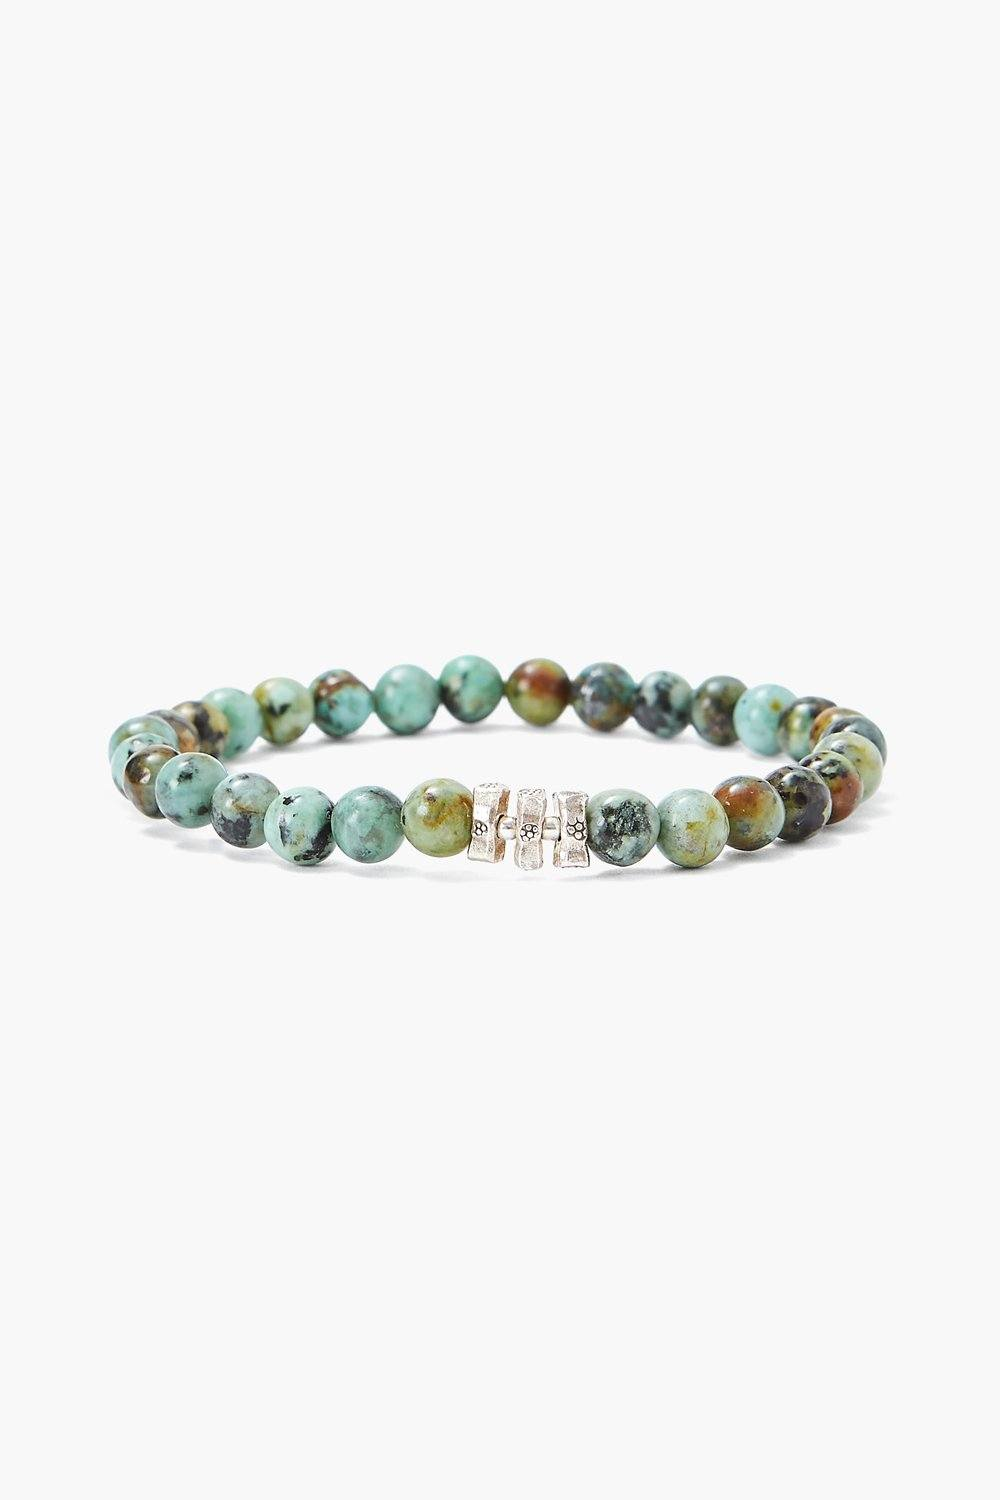 African Turquoise and Etched Silver Stretch Bracelet